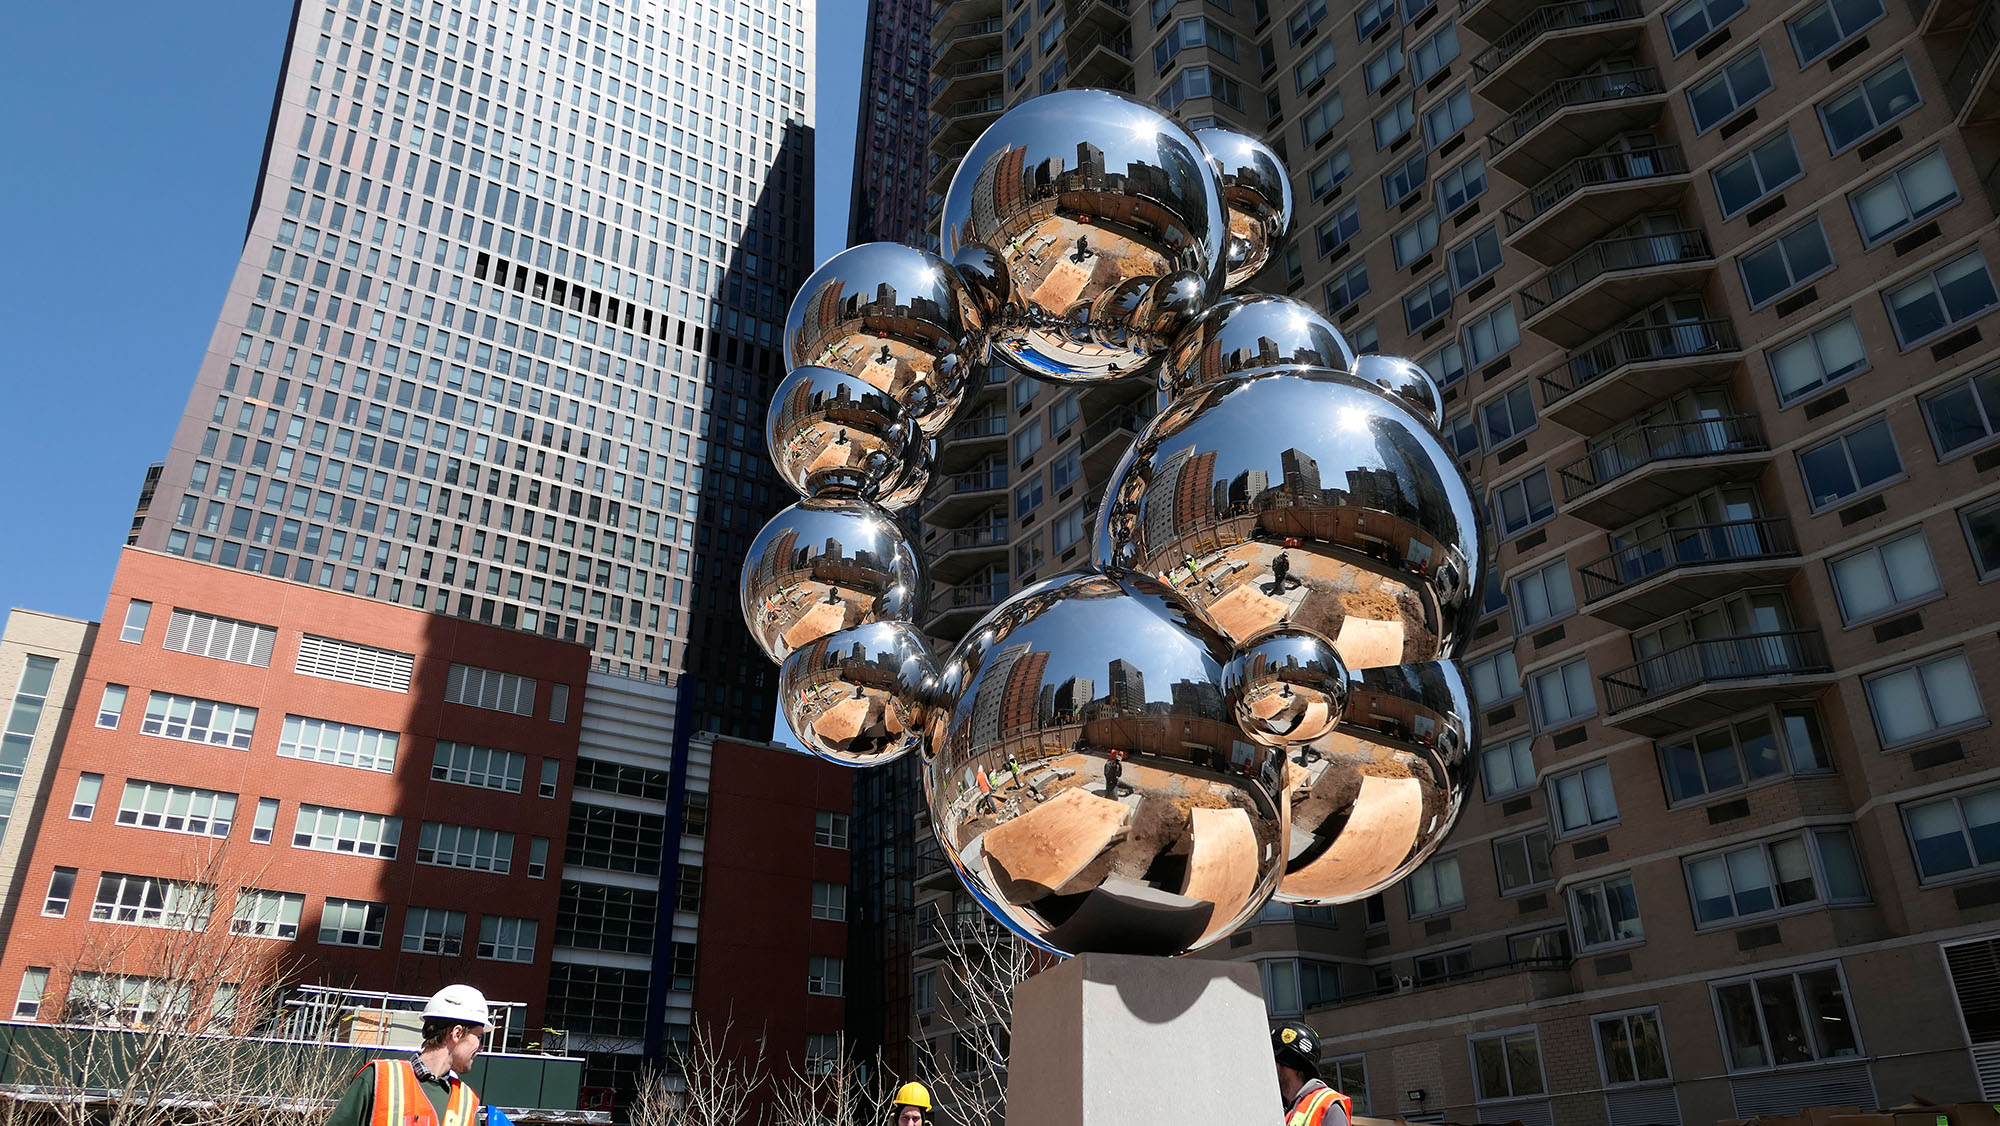 david_fried_artist_permanent_public_sculpture_NYC_New_York_2019